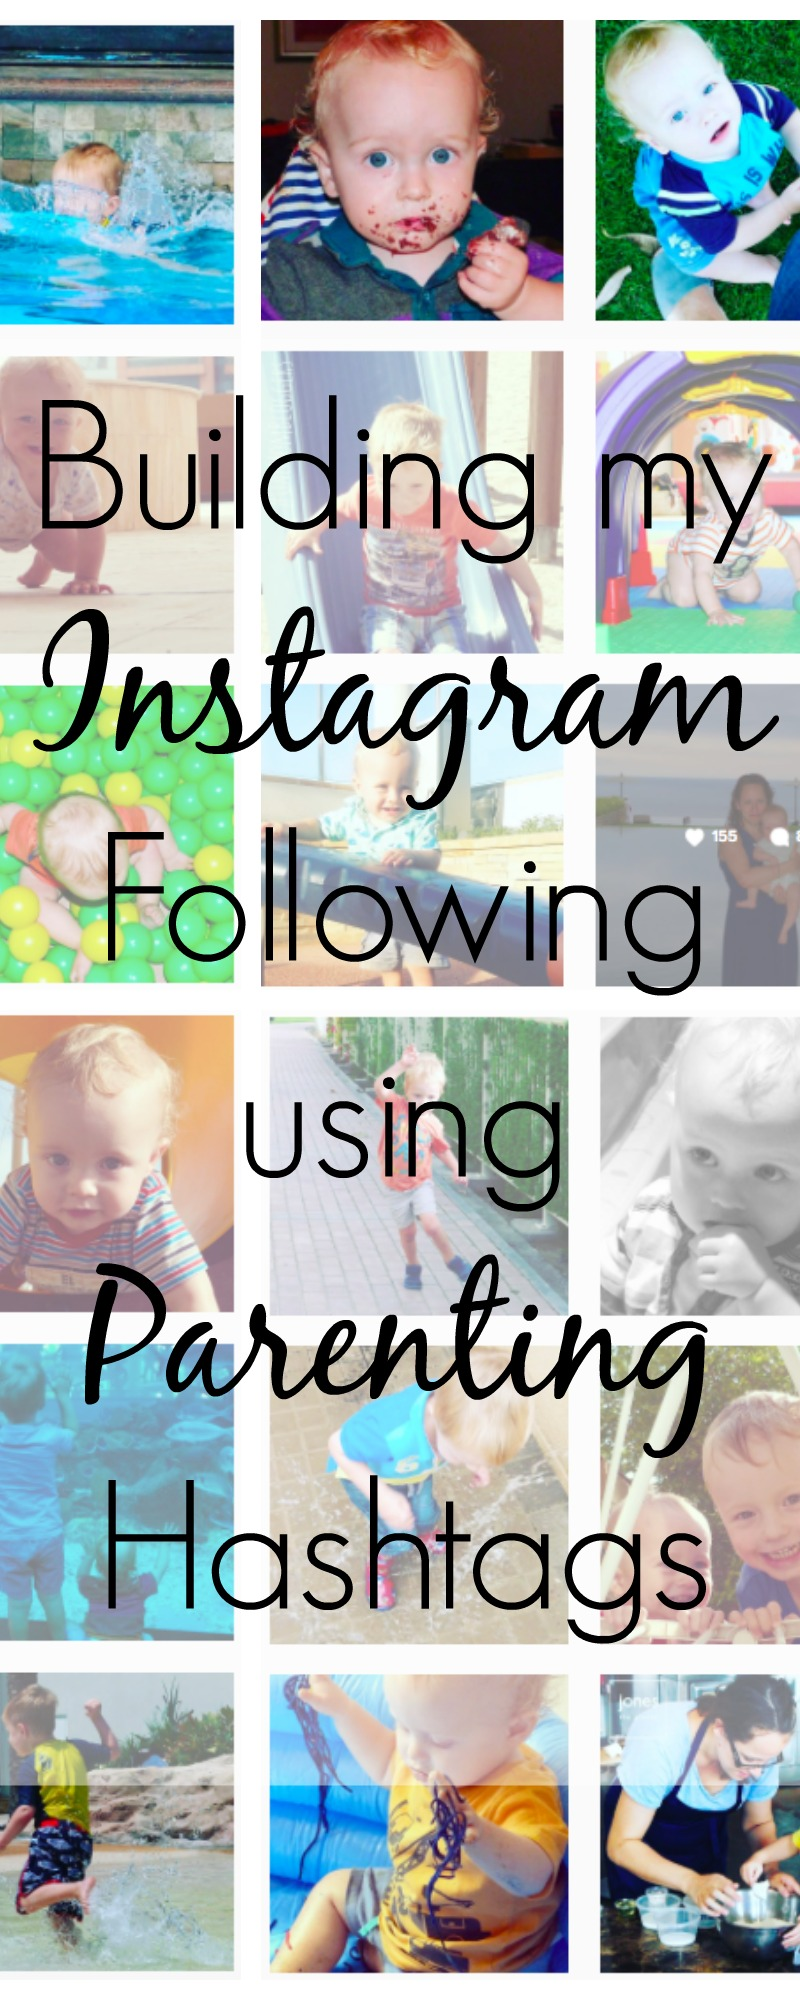 Building my Instagram Following using Parenting Hashtags Pin